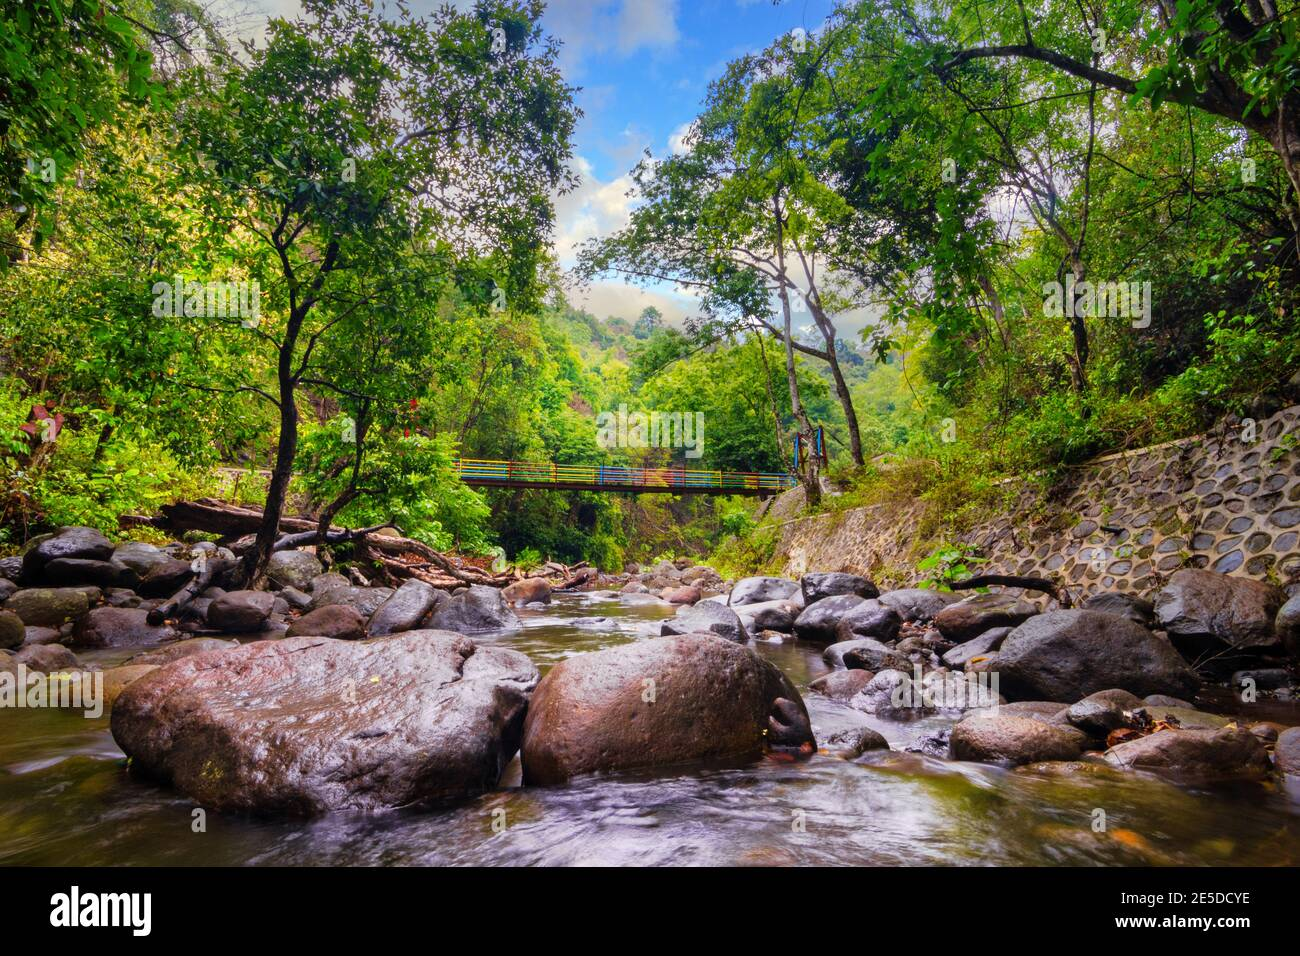 Wisata Alam High Resolution Stock Photography and Images   Alamy